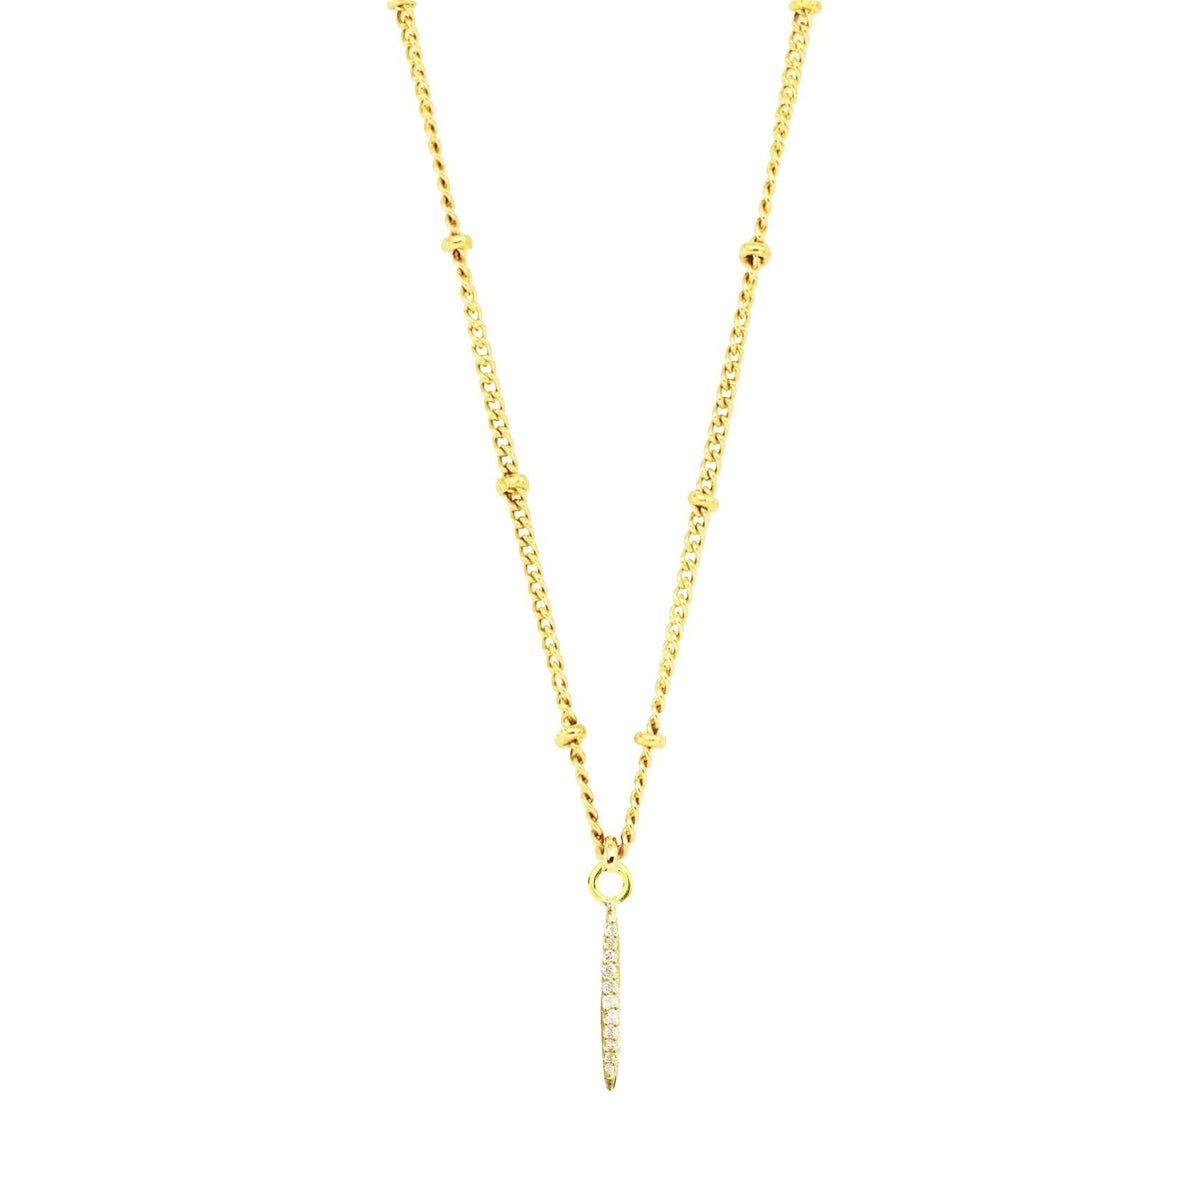 DREAM STARDUST ICON - CUBIC ZIRCONIA & GOLD - SO PRETTY CARA COTTER